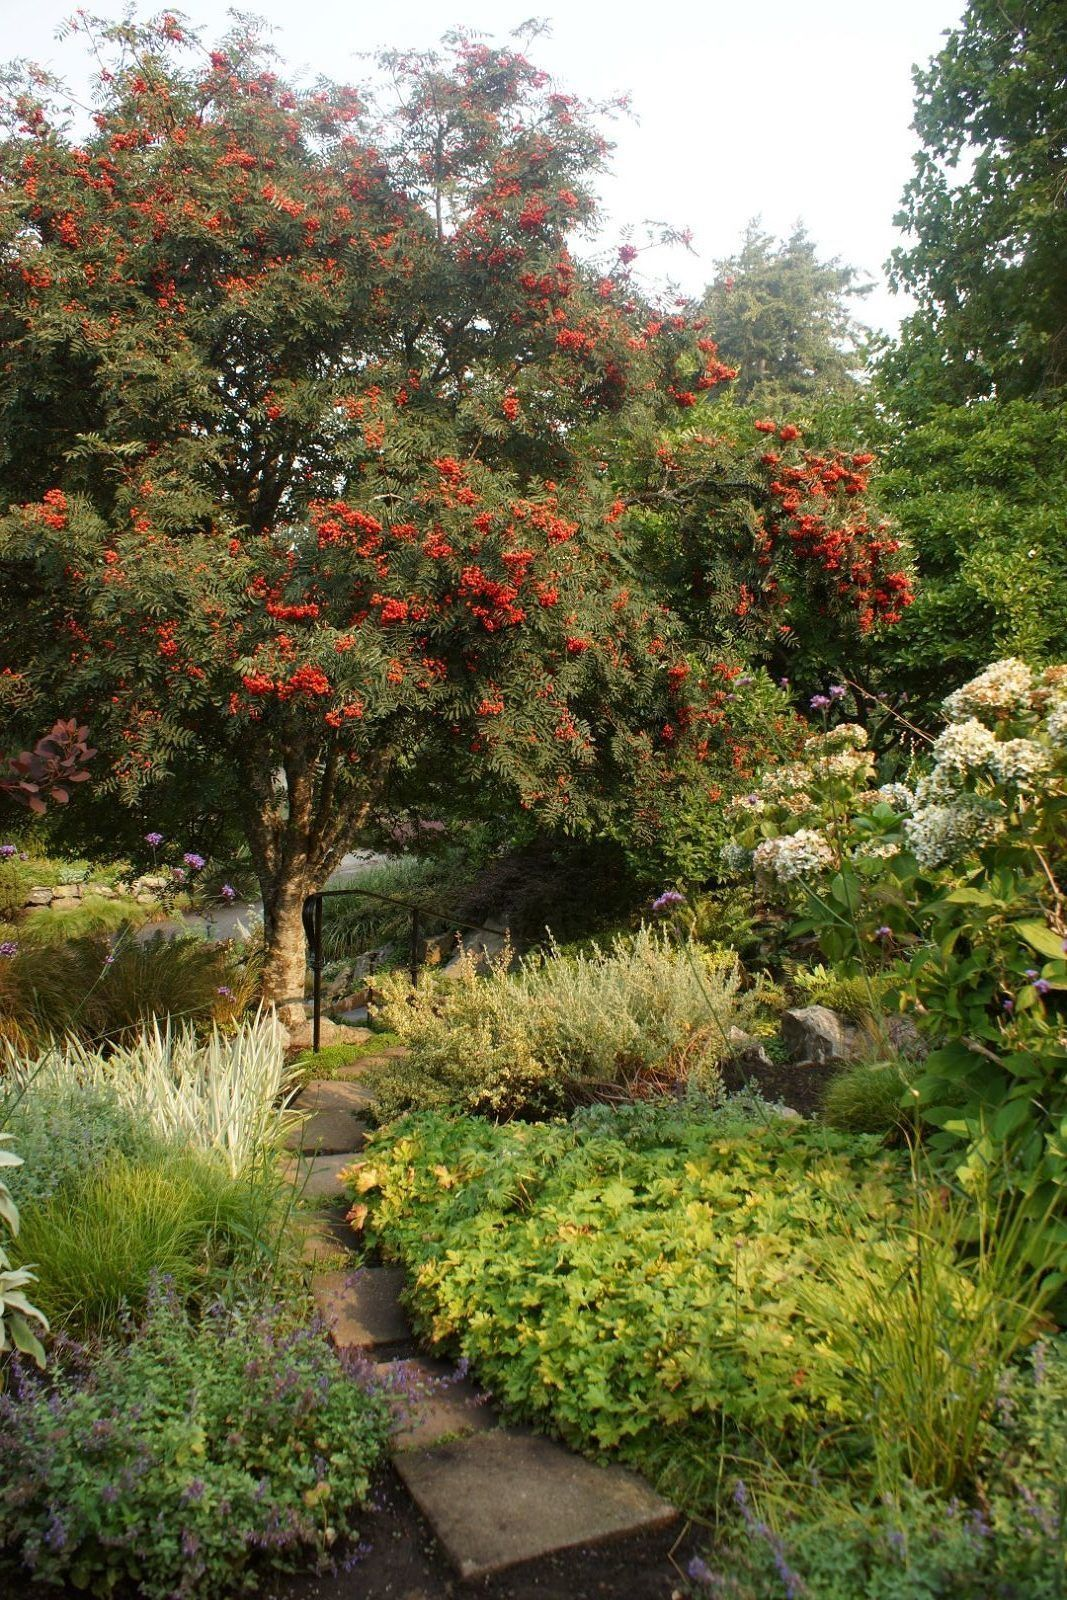 Garden inspiration from british columbia part 1 finegardening a scene from the cut flower garden highlighting a beautiful berry covered mountain ash sorbus sp zones 37 mountain ash are incredibly beautiful but izmirmasajfo